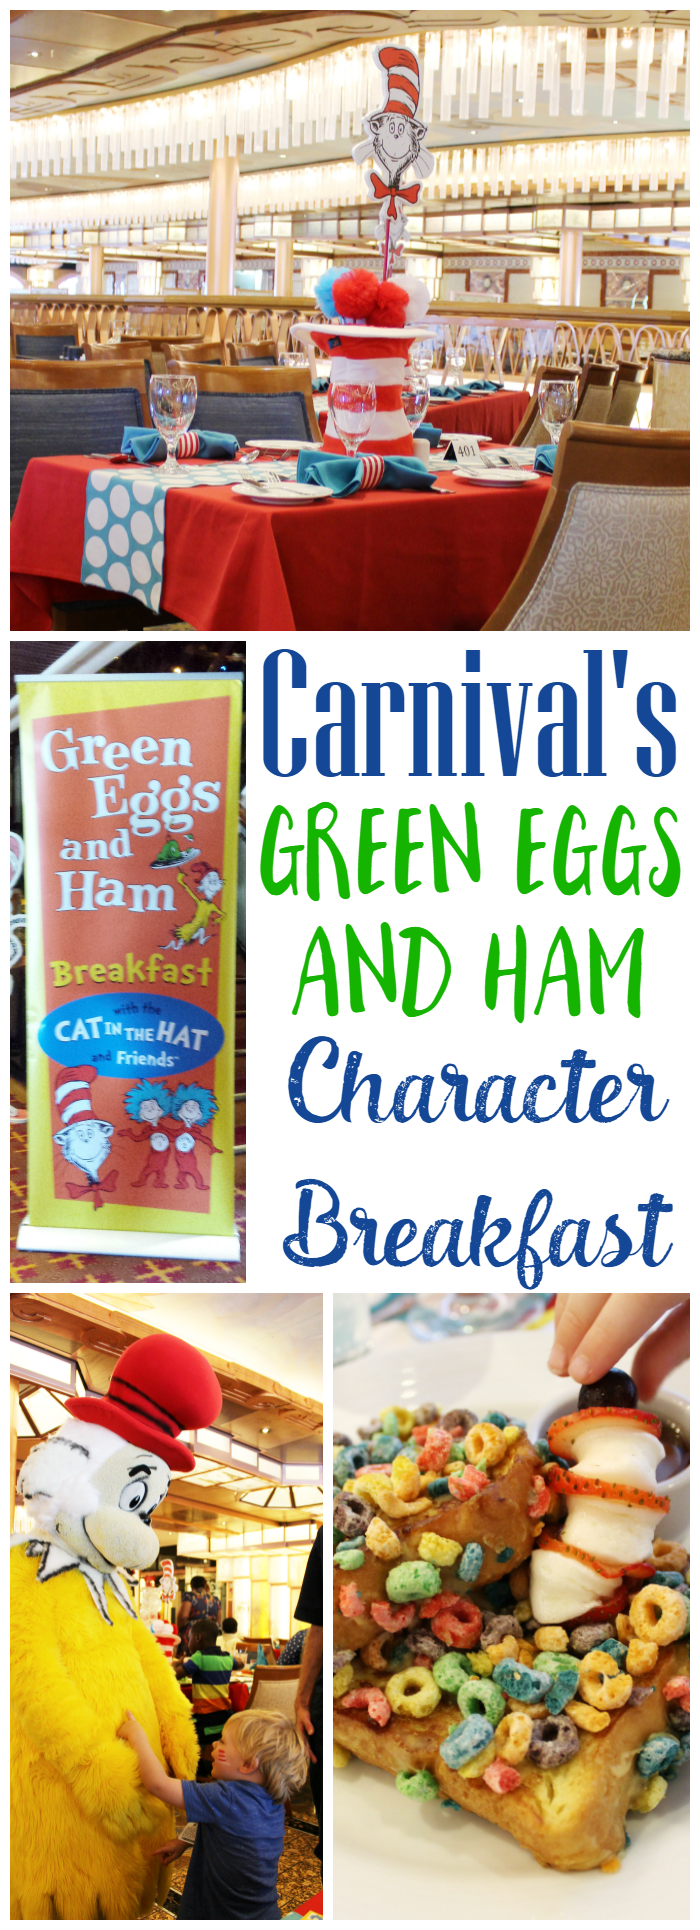 carnival-green-eggs-and-ham-character-breakfast